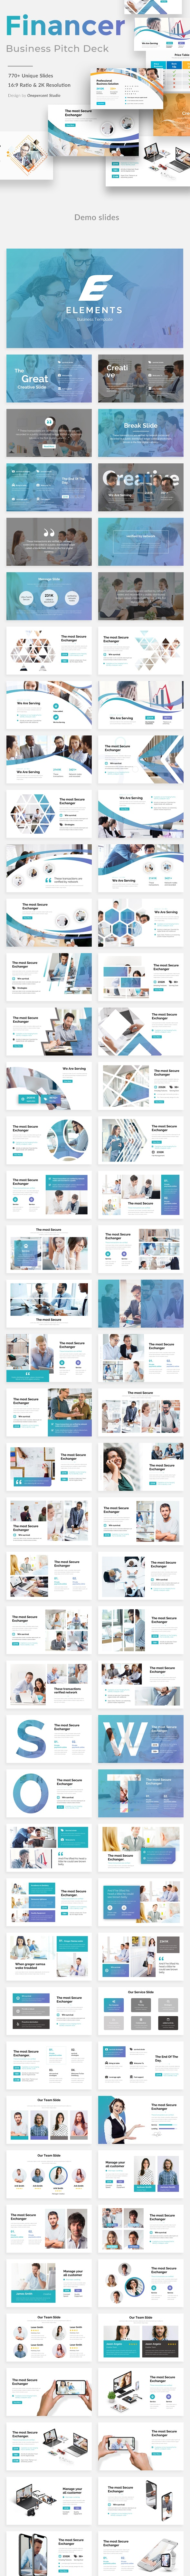 Finaner Pitch Deck 3 in 1 Bundle Keynote Template - Business Keynote Templates